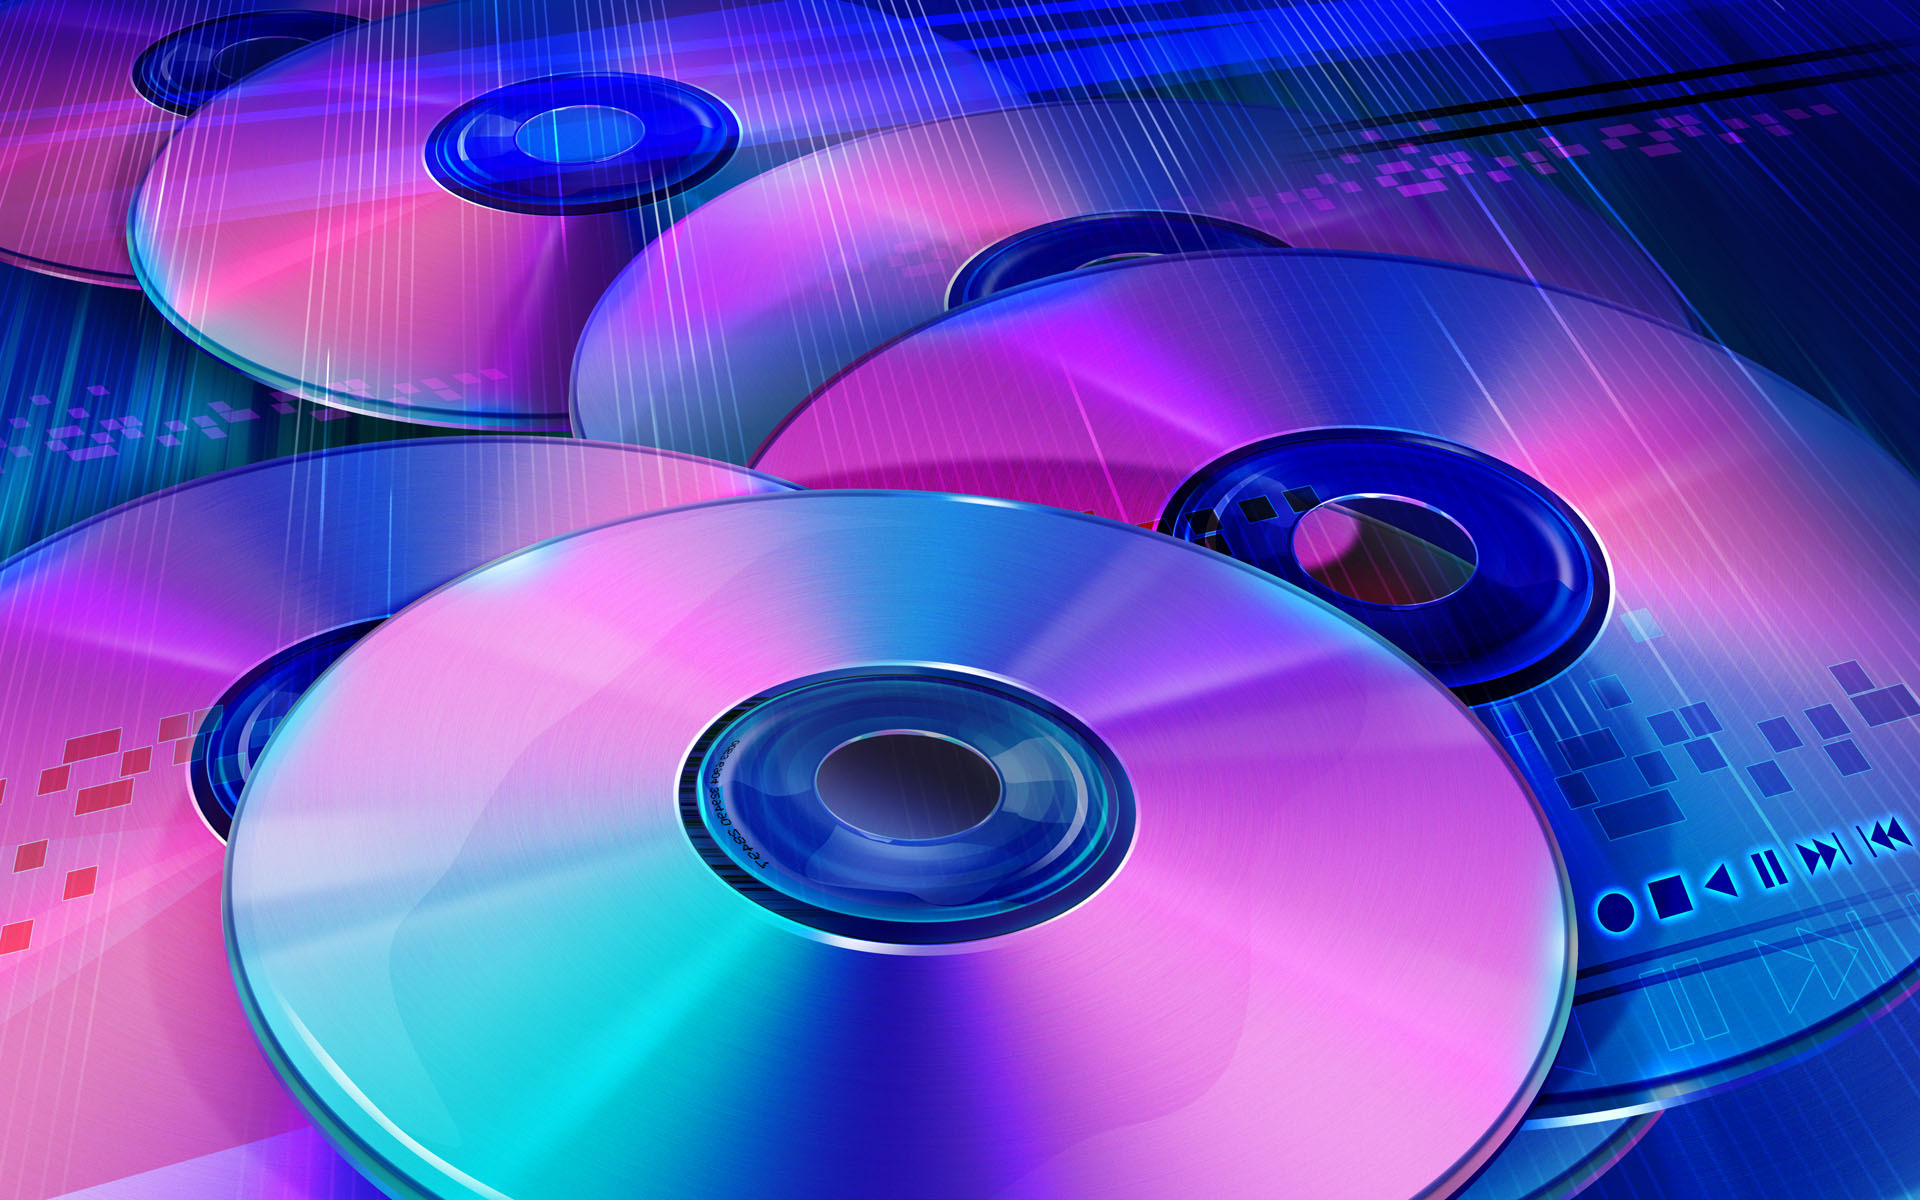 Free Download Promo Disc 1920x1200 For Your Desktop Mobile Tablet Explore 56 Cd Background Images Cd Background Images Cd Cover Backgrounds C D Guadalajara Wallpapers